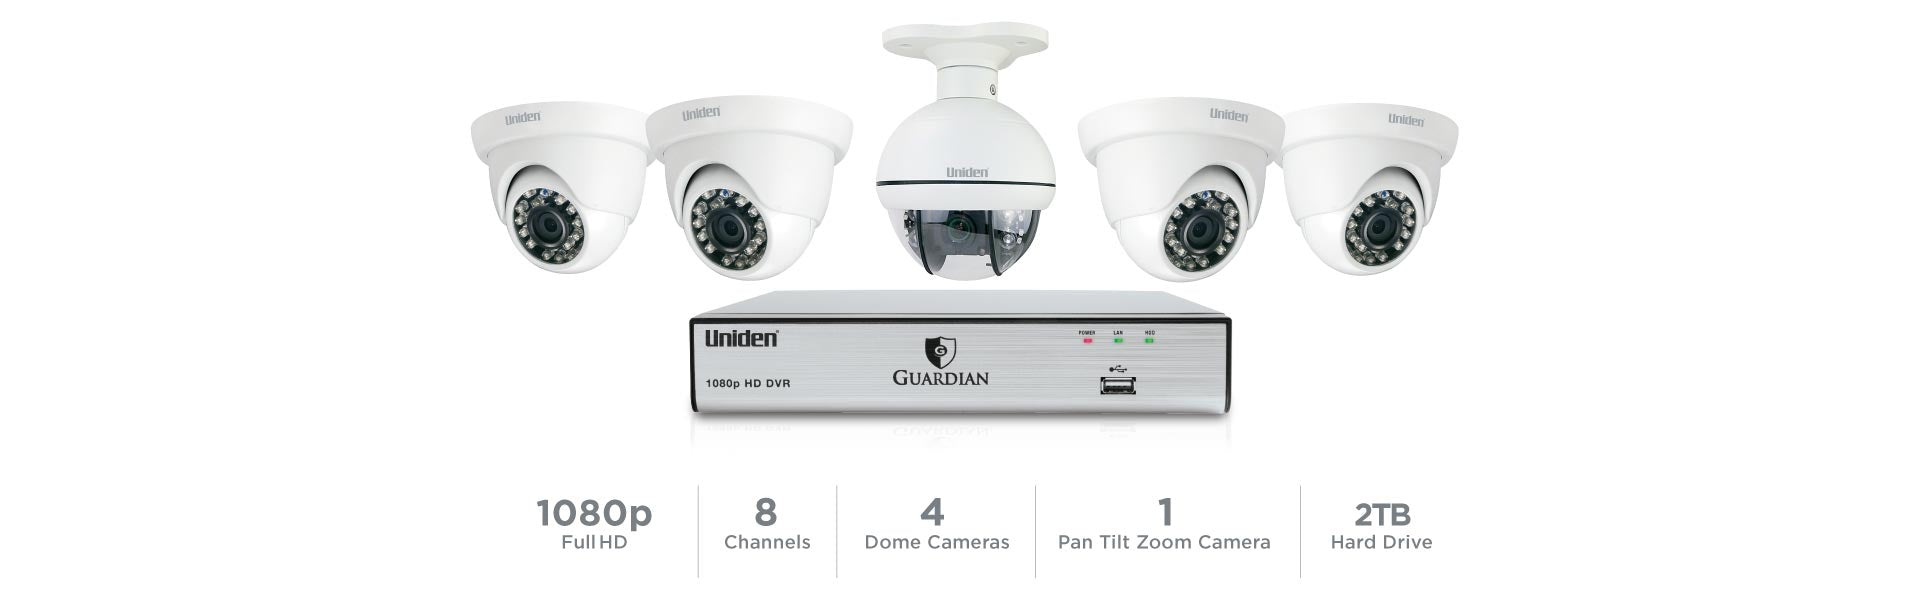 6 Guardian G7805D2 Wired Video Surveillance System